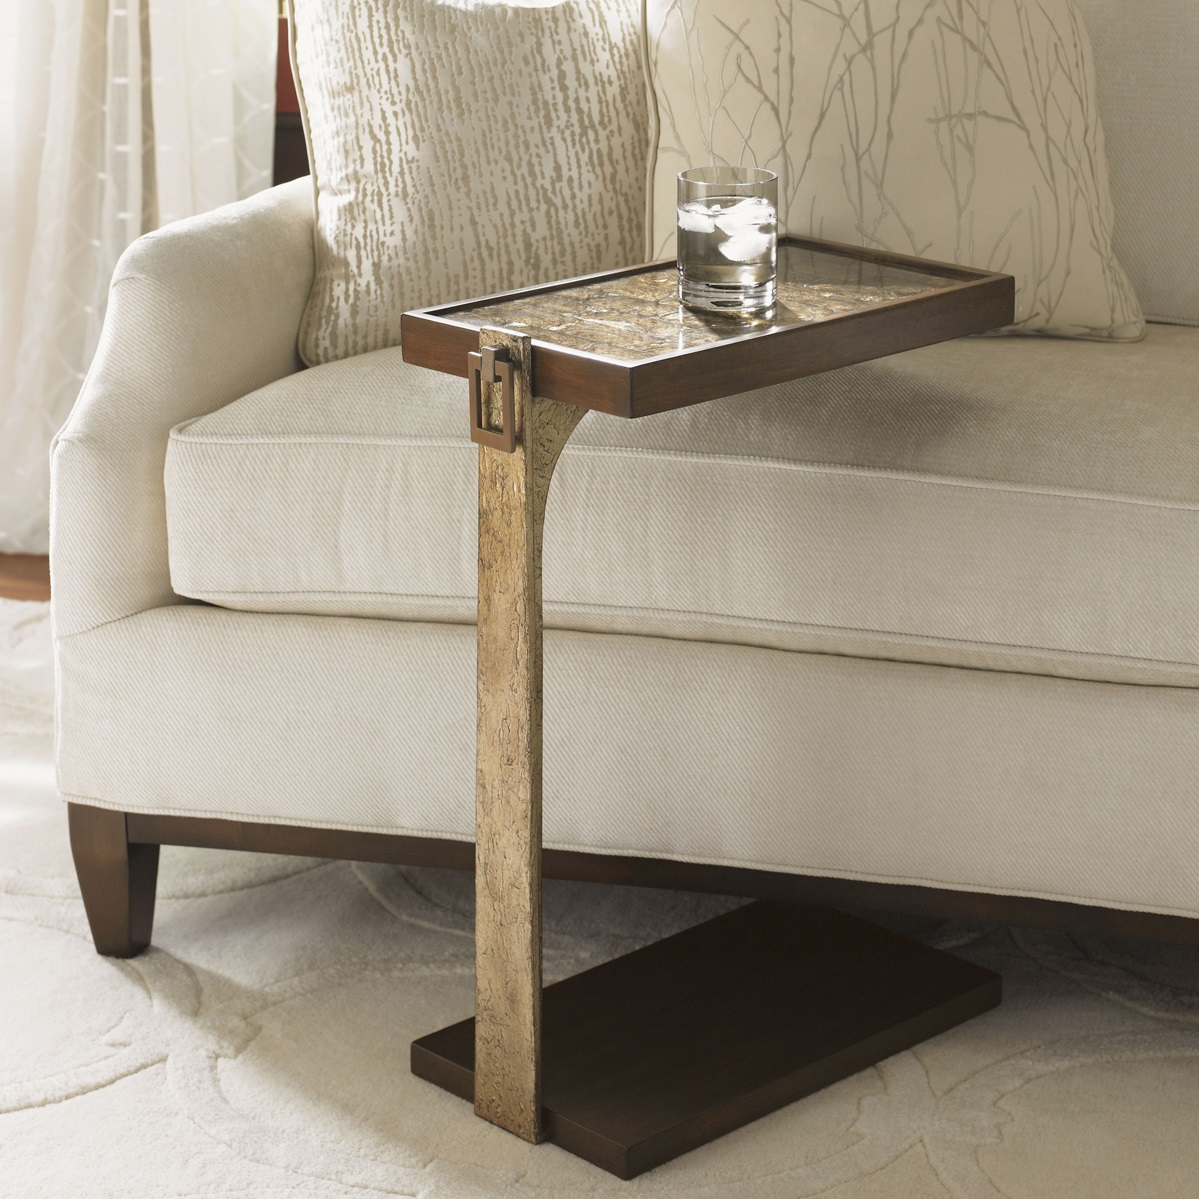 small table tables end side gold accent console limited production design stock elegant capiz shell inlay drinks leaf accents inches part extensive coordinating placemats circular